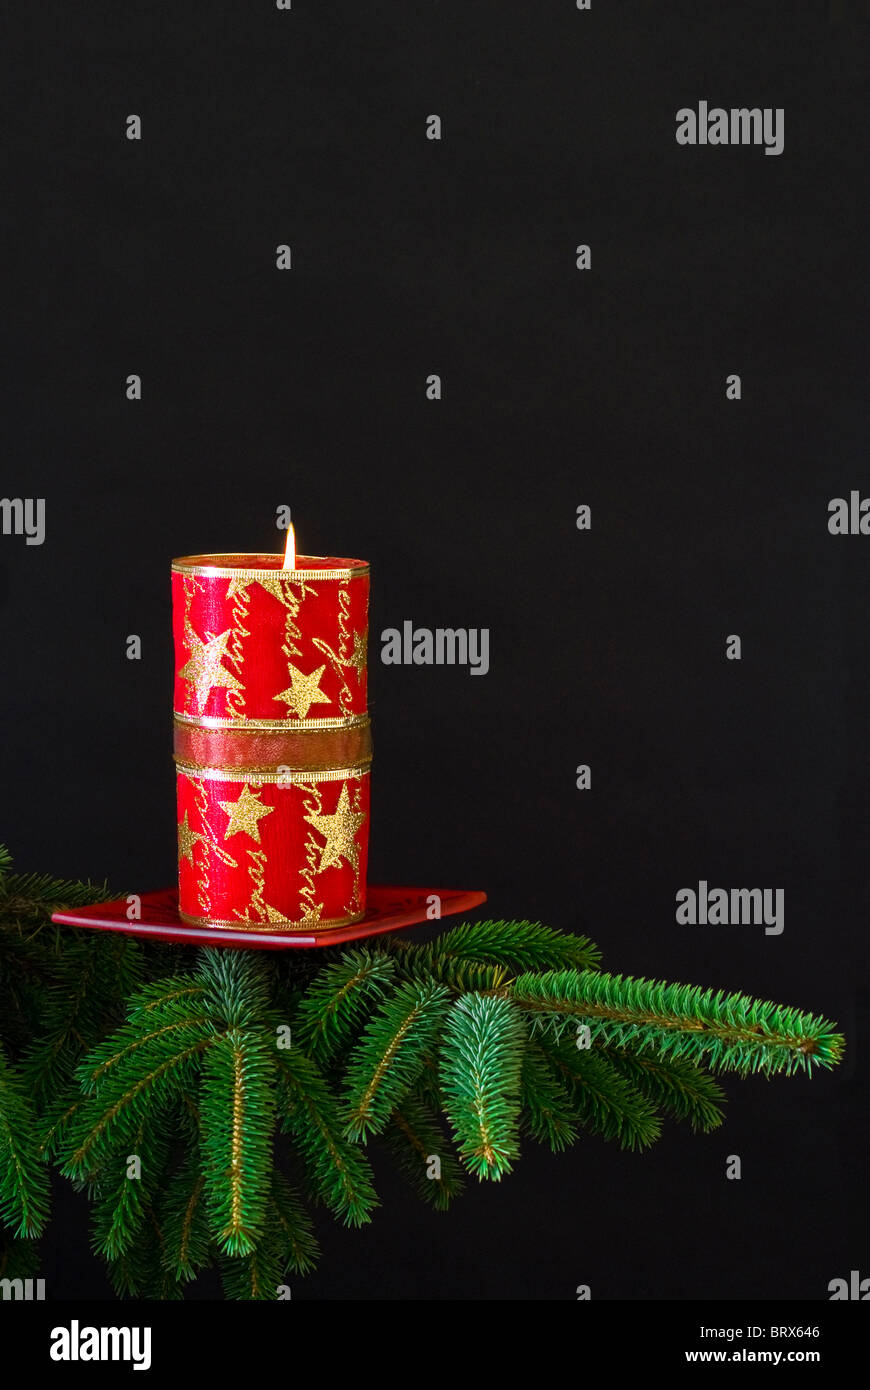 Red Christmas candle on spruce branch - black background - Stock Image